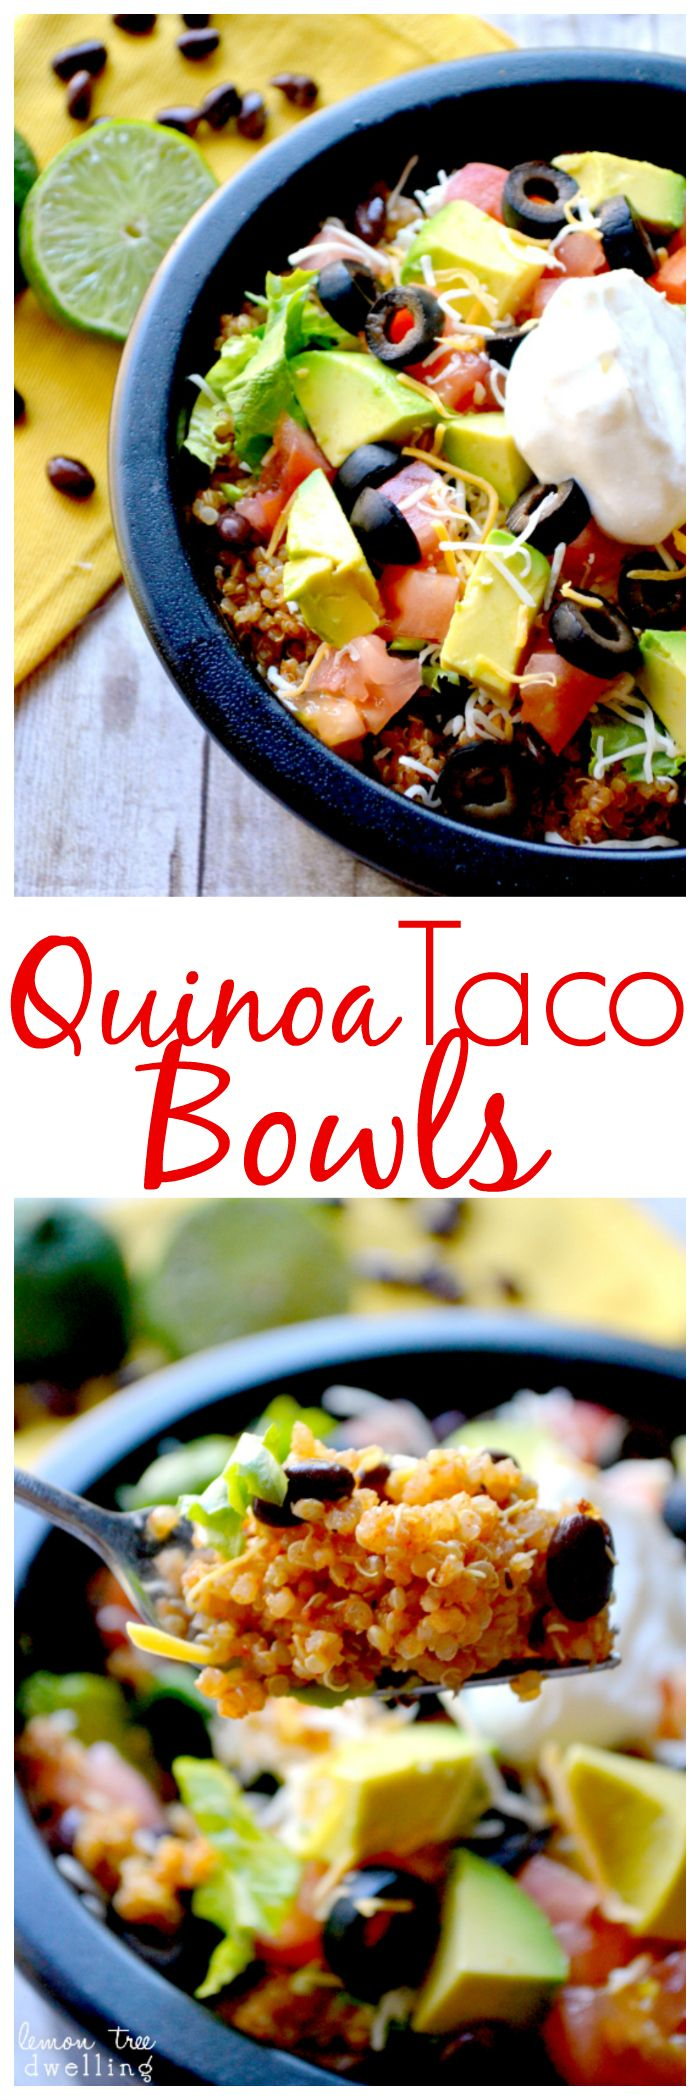 Quinoa Taco Bowls | Lemon Tree Dwelling